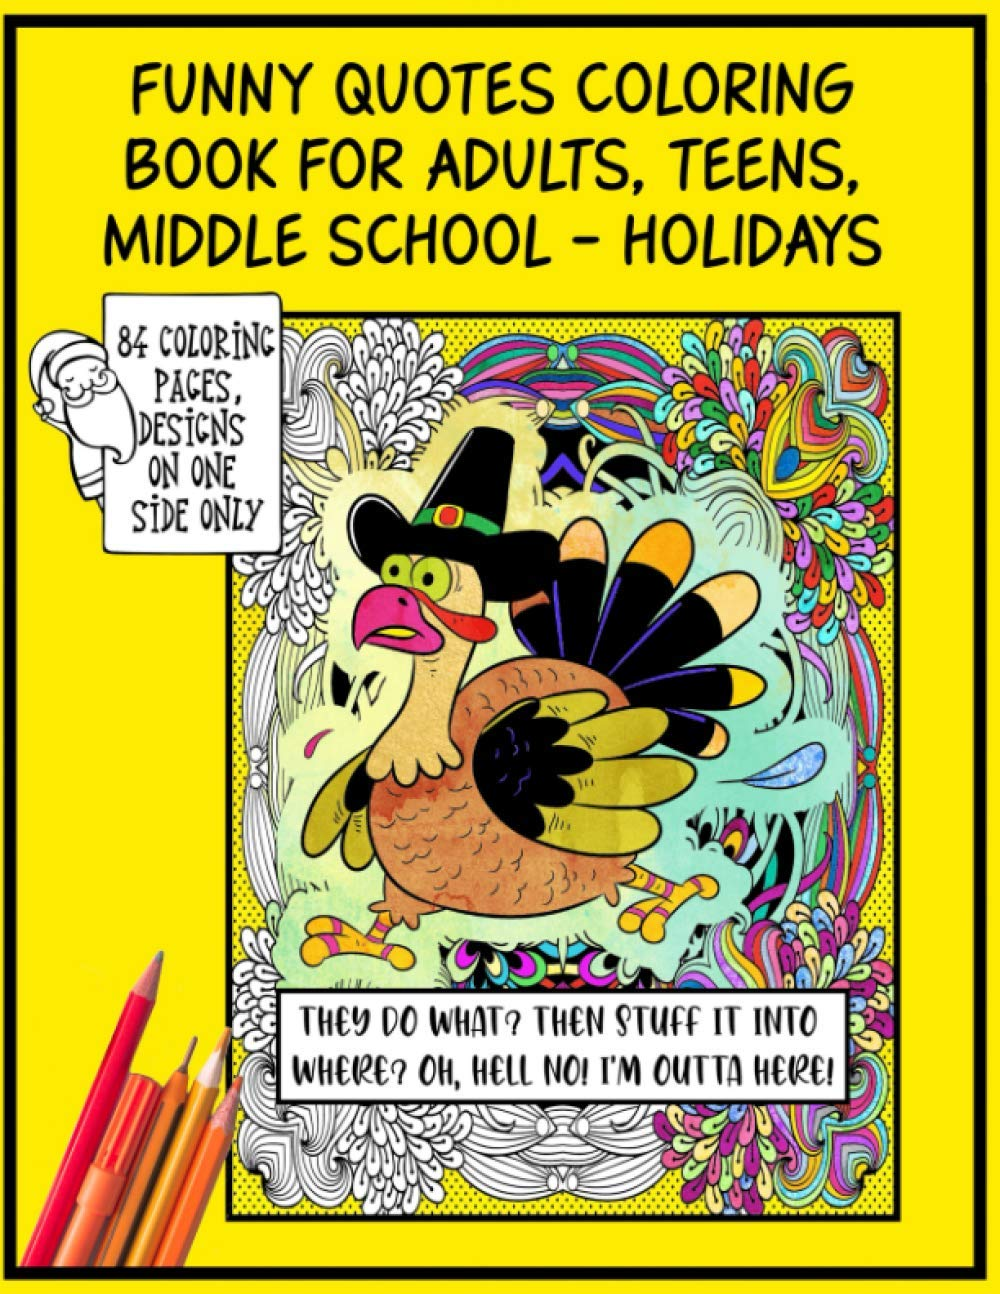 Amazon Com Funny Quotes Coloring Book For Adults Teens Middle School Holidays Halloween Christmas Thanksgiving Easter Valentines 84 Coloring Pages Designs On One Side Only Large 8 5 X11 9798696418605 Sherwood Sydney Books